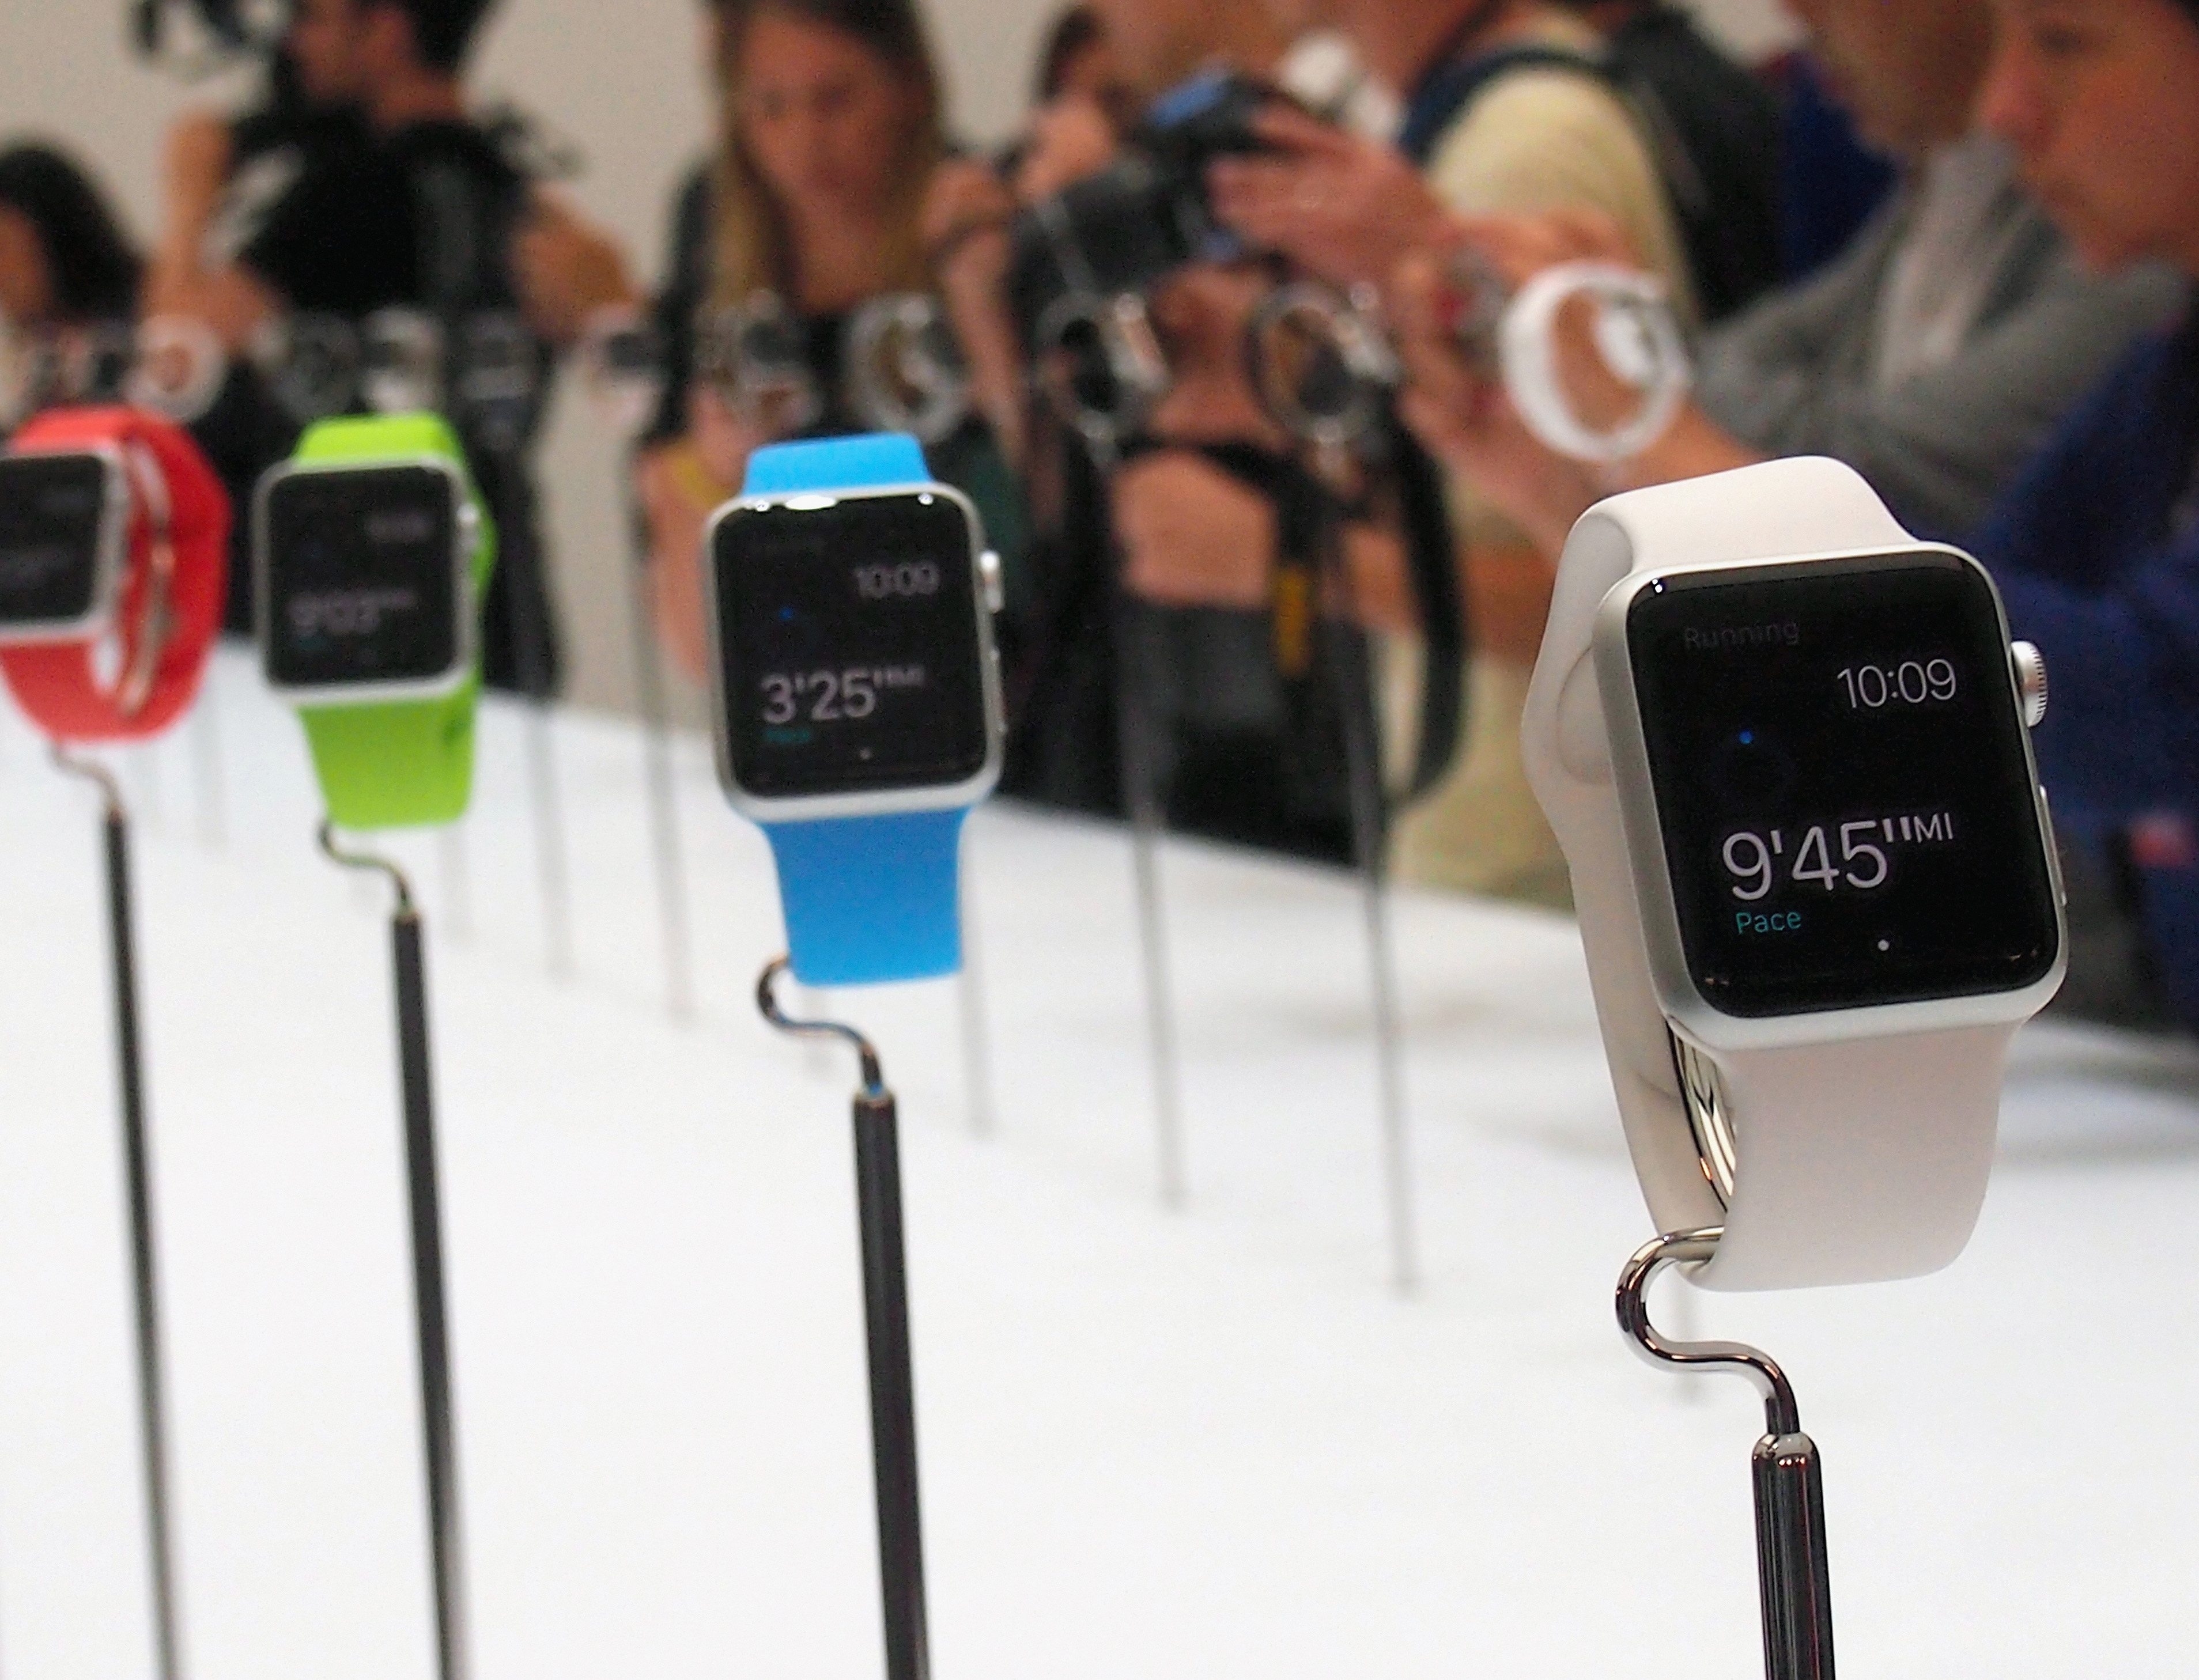 Apple Watch are displayed during an Apple special event at the Flint Center for the Performing Arts on September 9, 2014 in Cupertino, California.